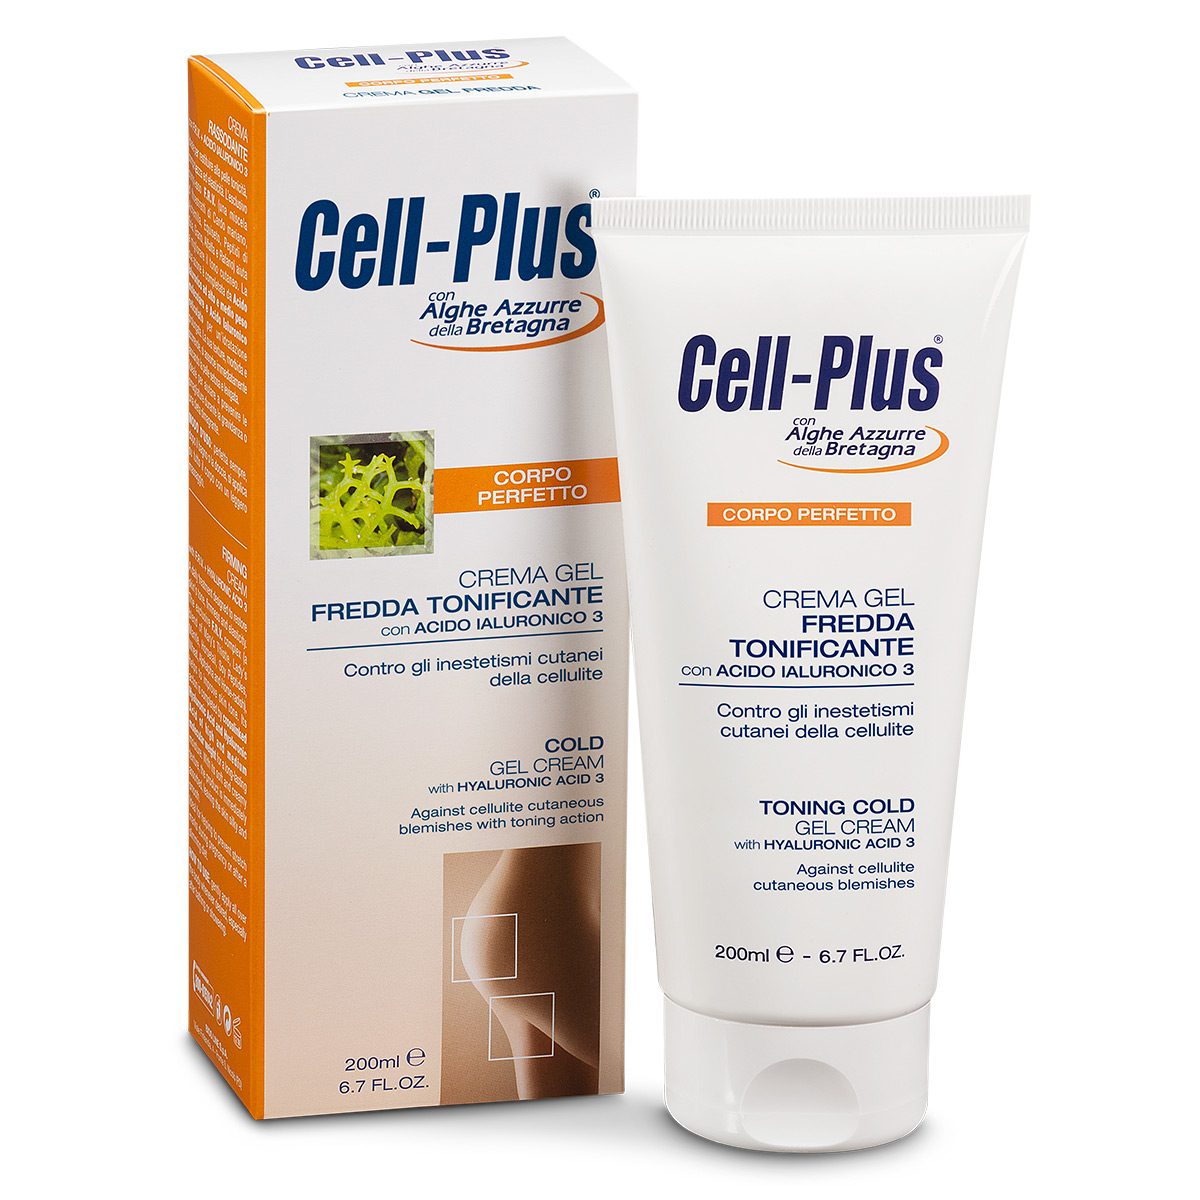 Cell-Plus Crema Gel Fredda Tonificante